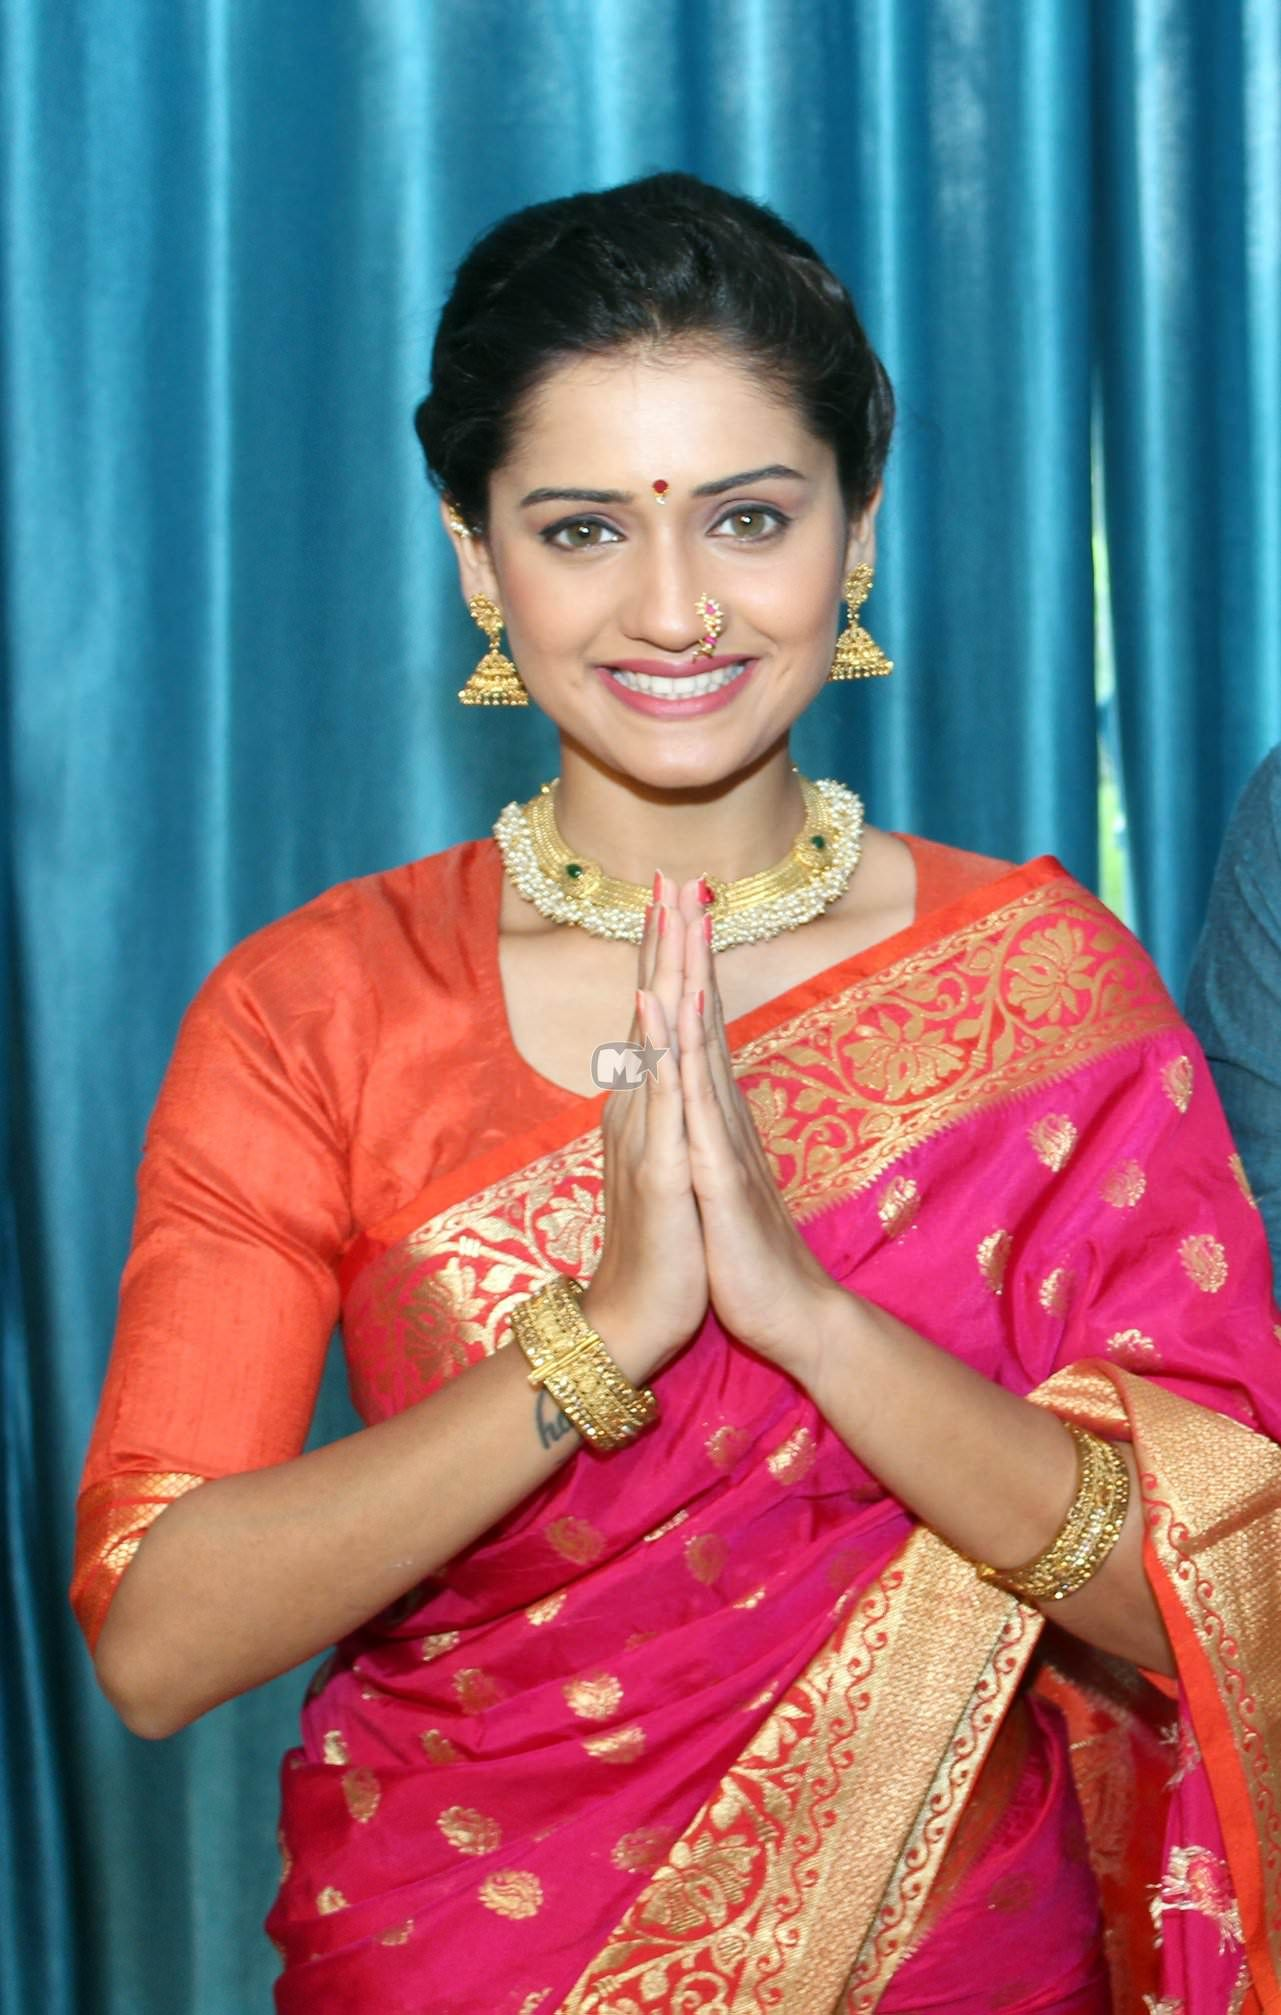 Hruta Durgule Marathi Actress Biography Photos Phulpakharu